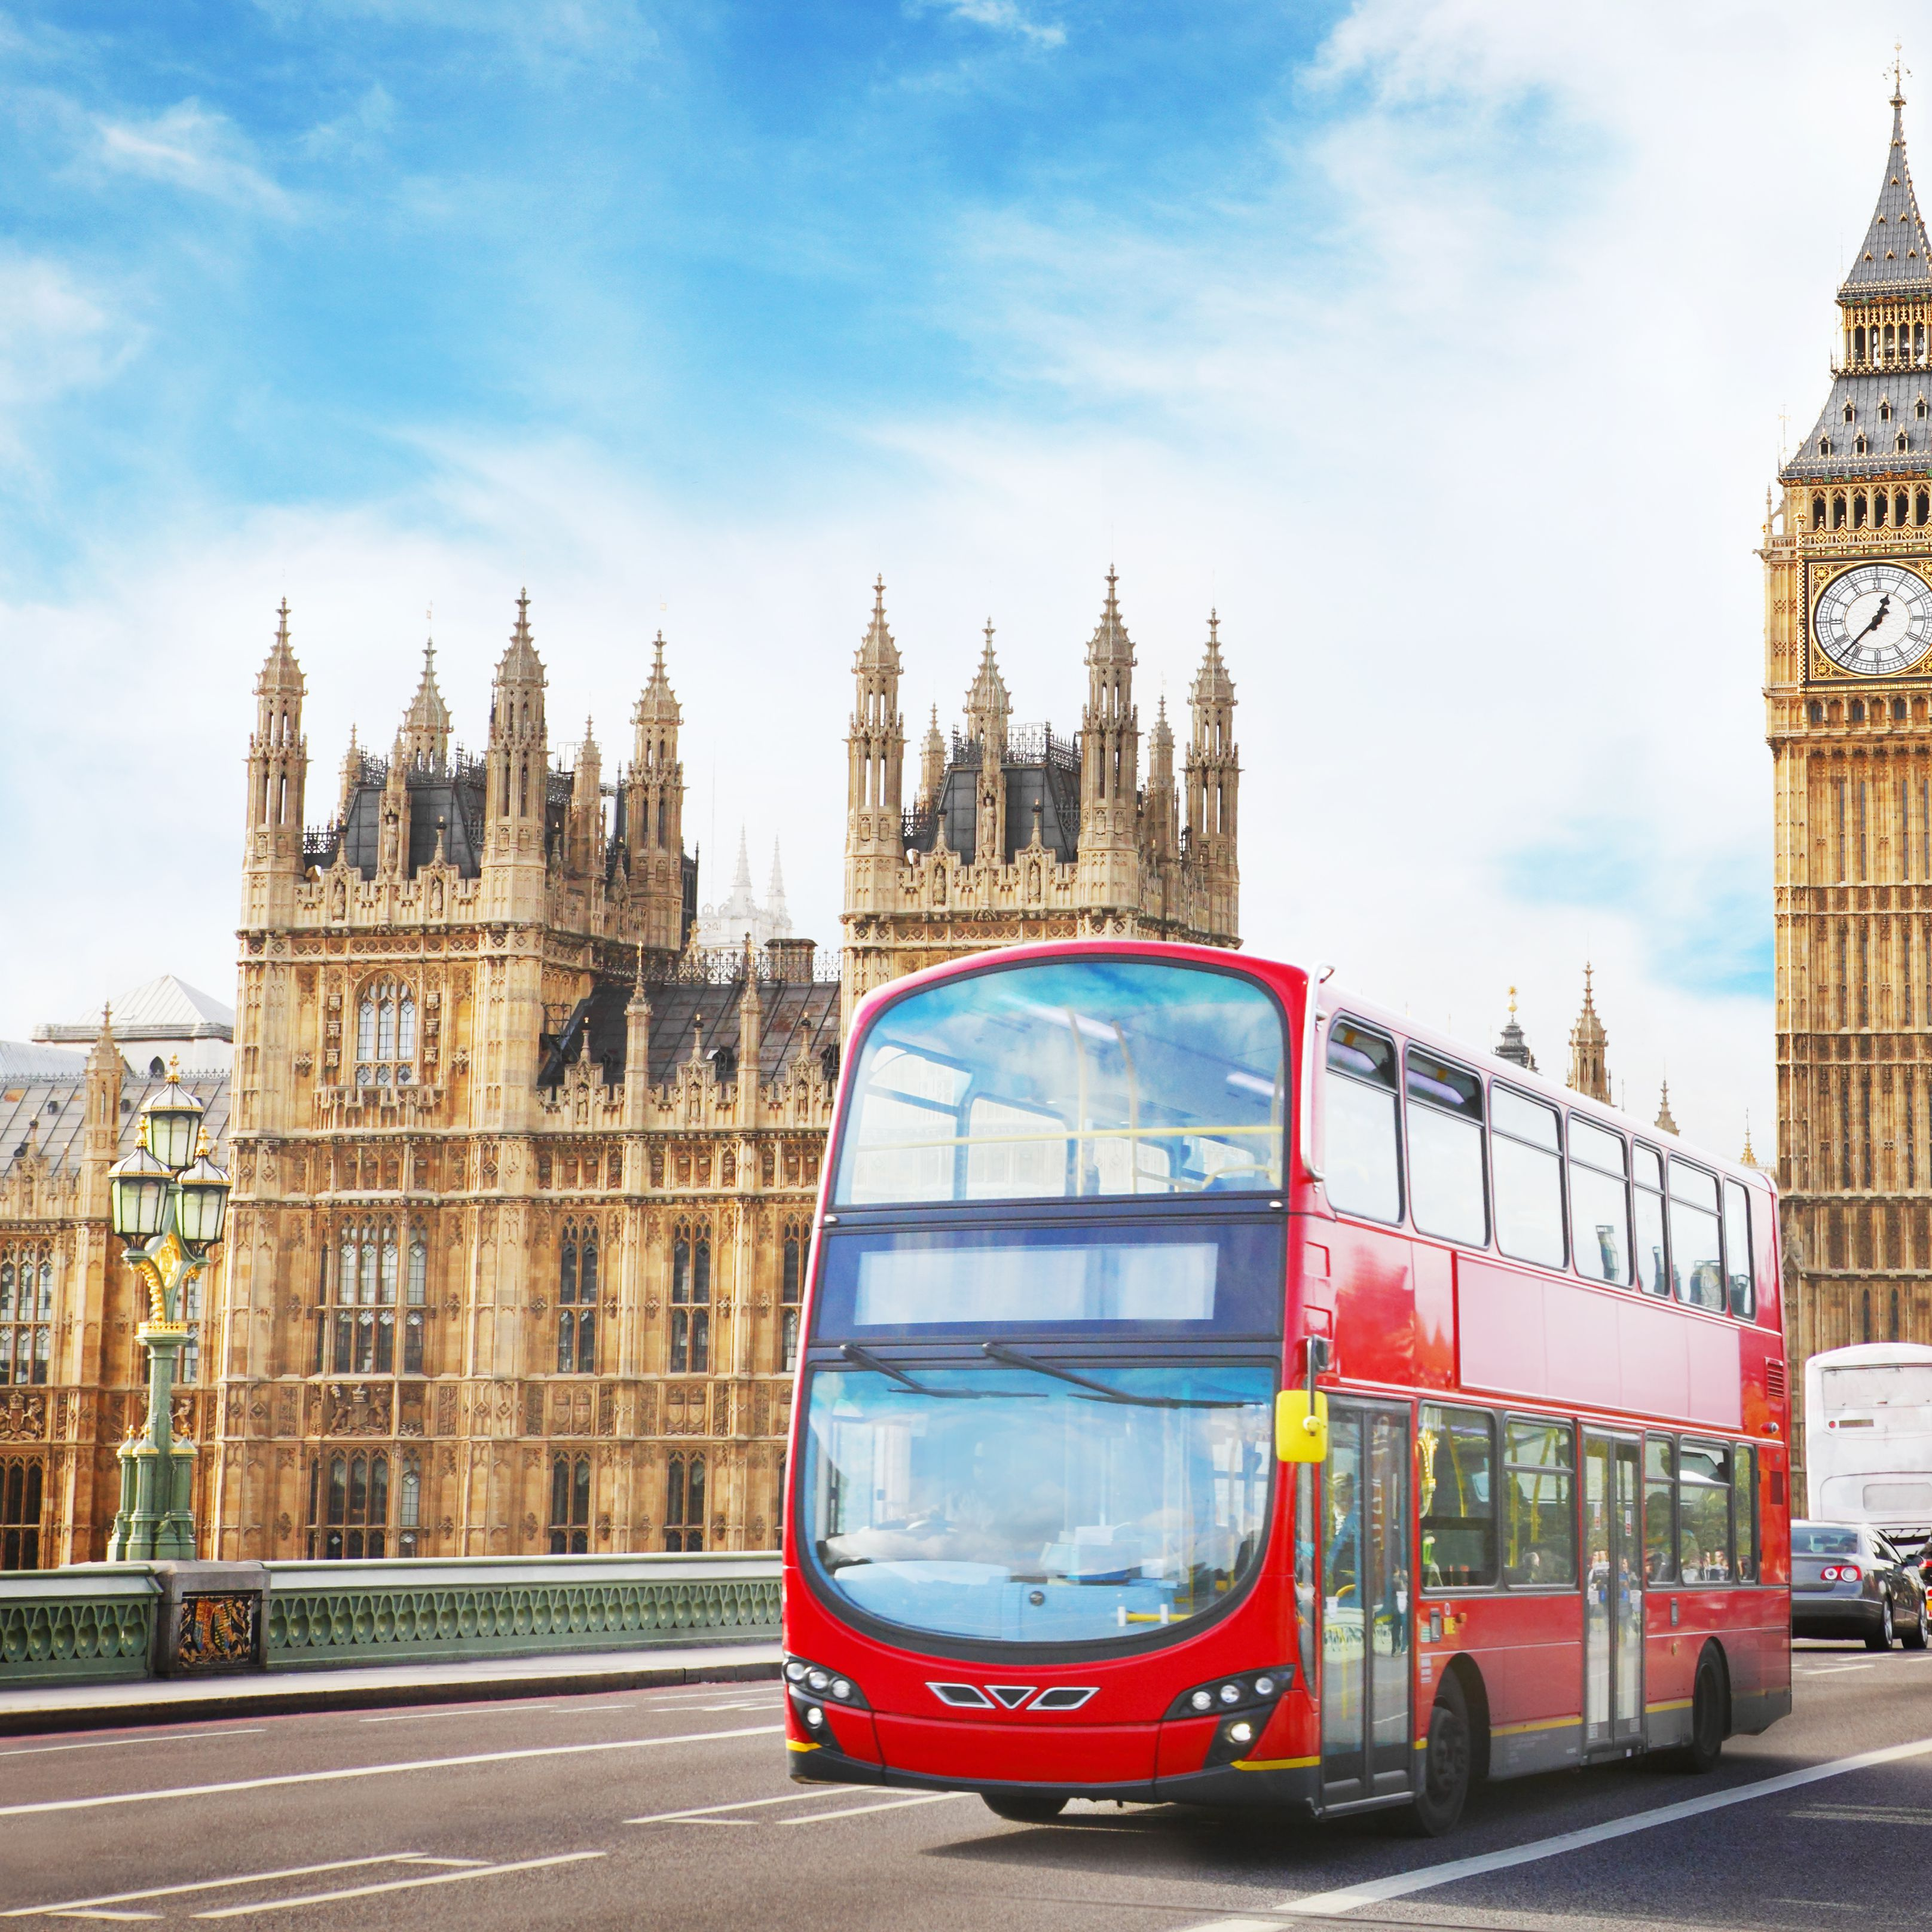 Riding London's Double-Decker Buses